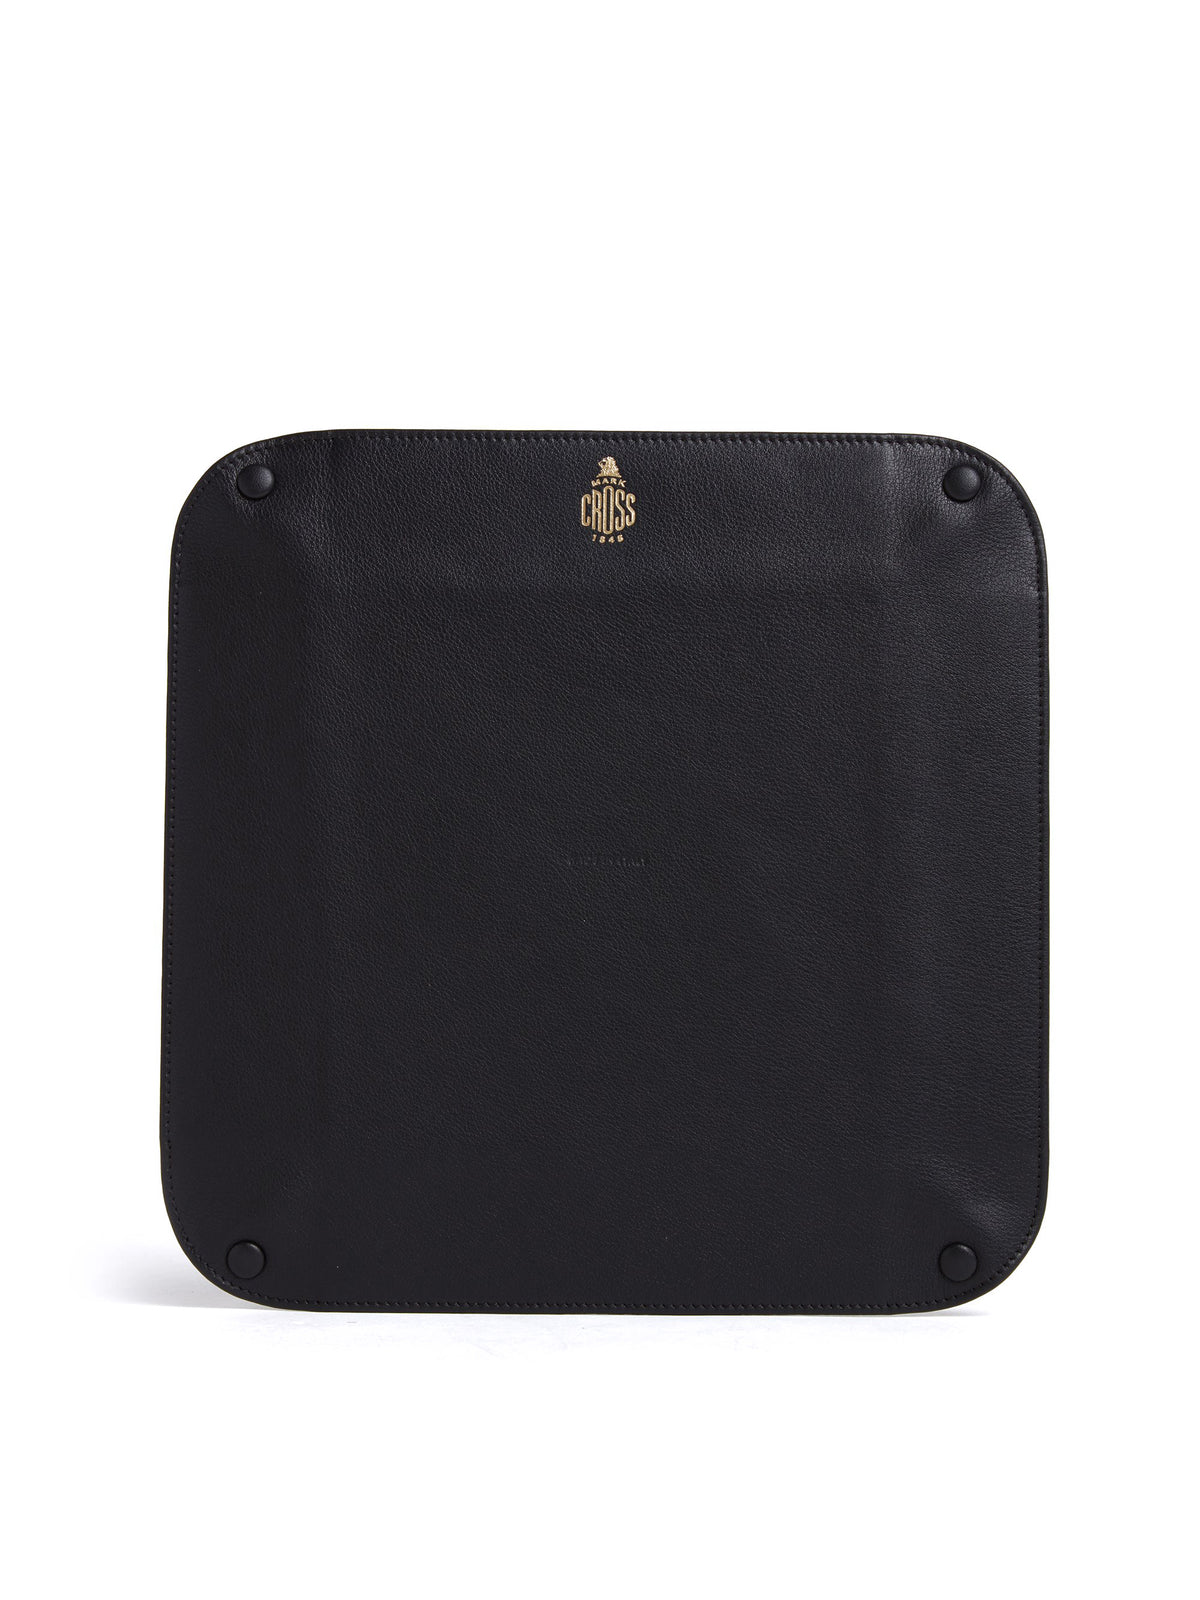 Large MC Jacquard & Leather Valet Tray